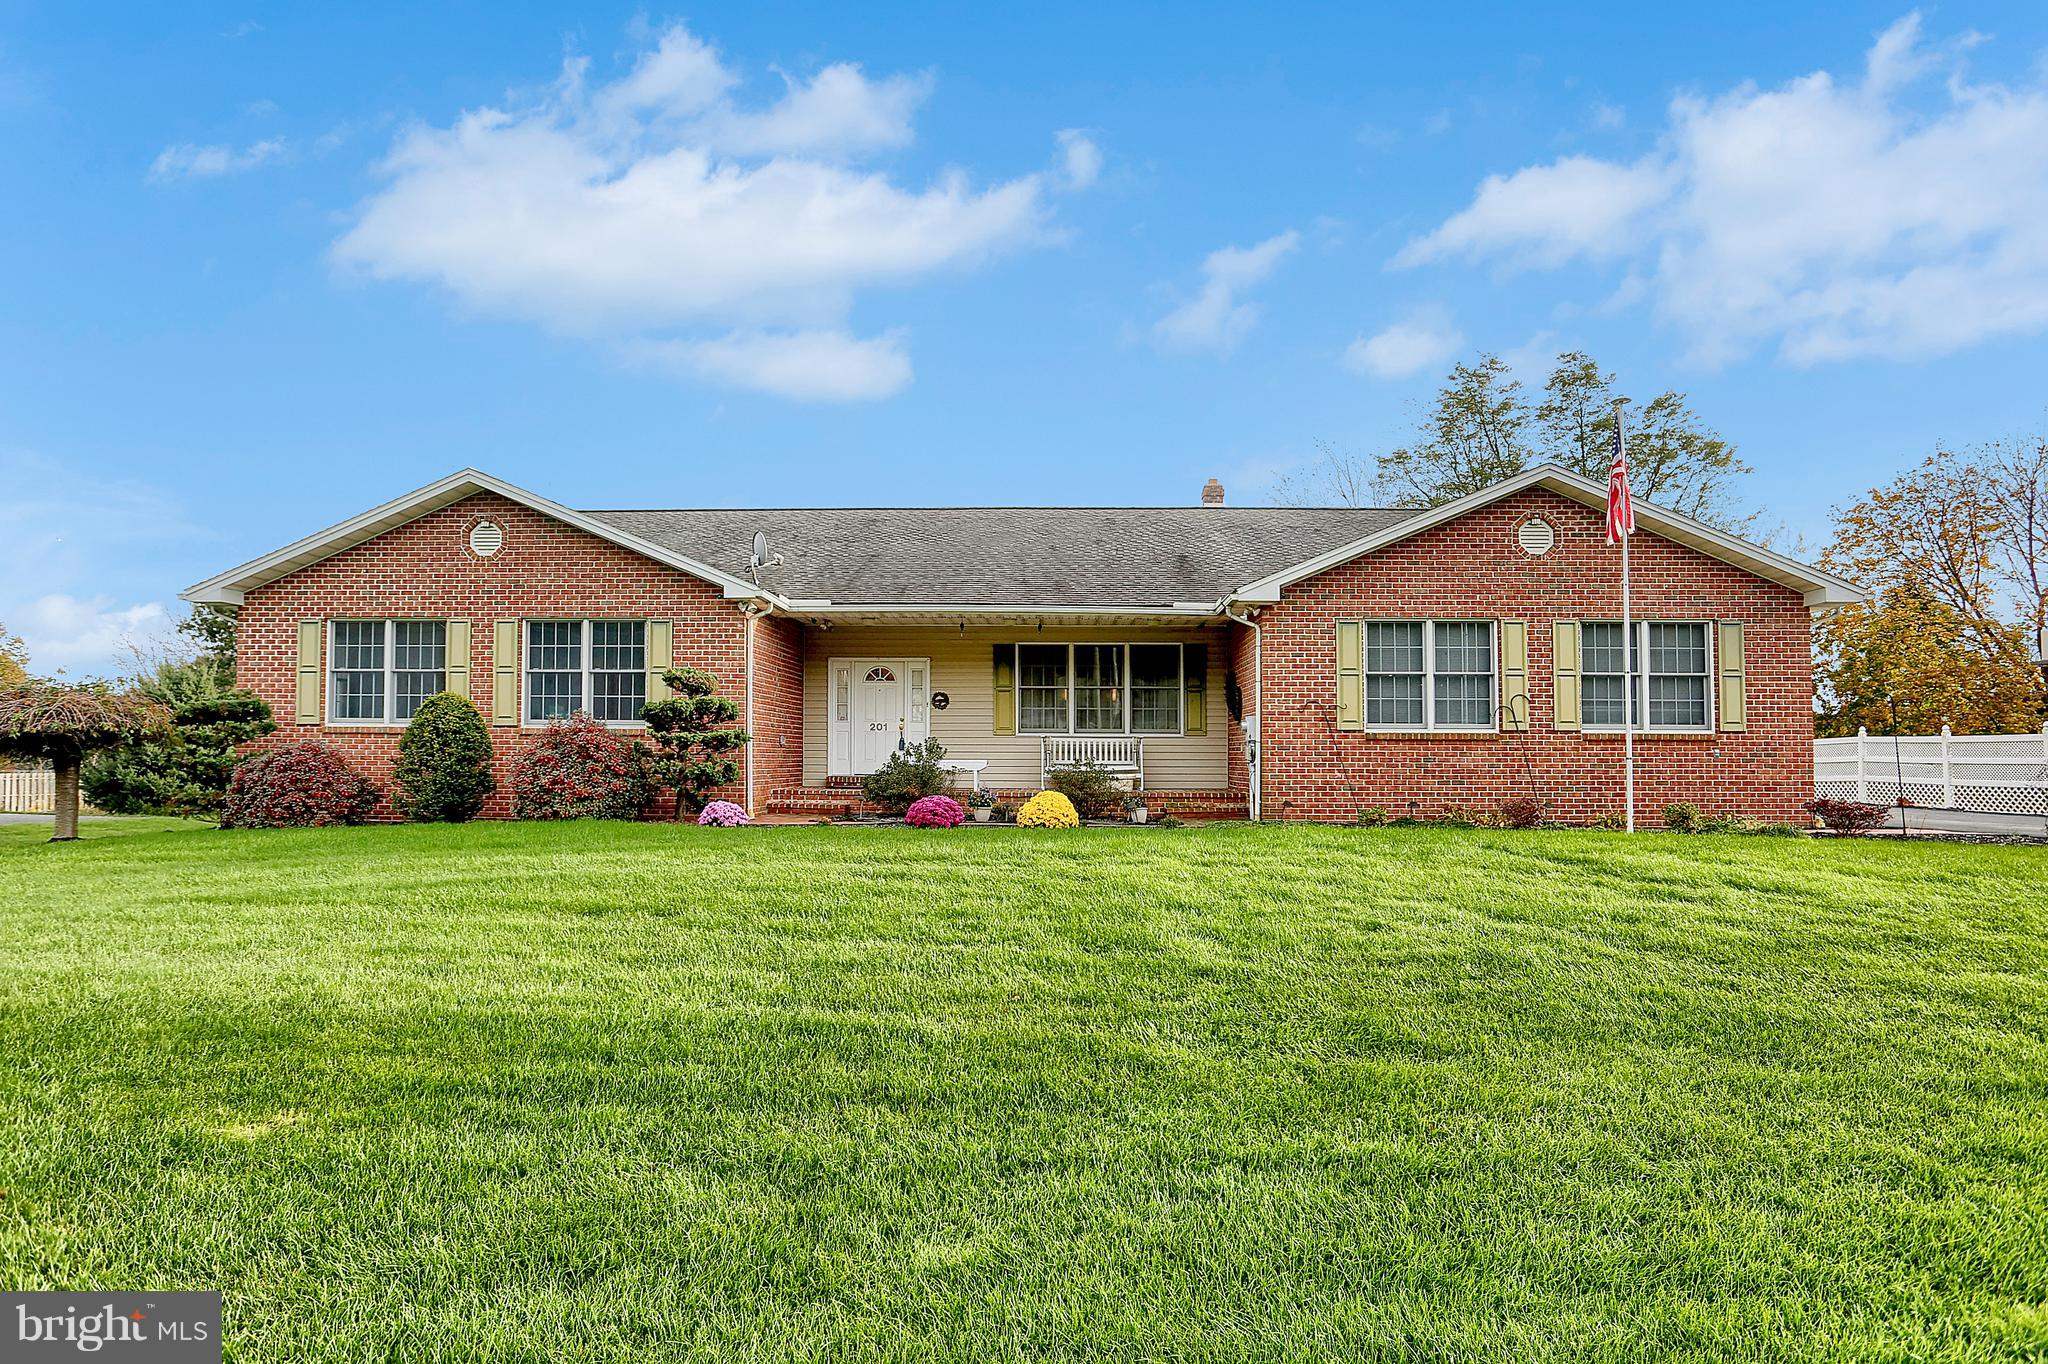 201 W SPRINGVILLE ROAD, BOILING SPRINGS, PA 17007